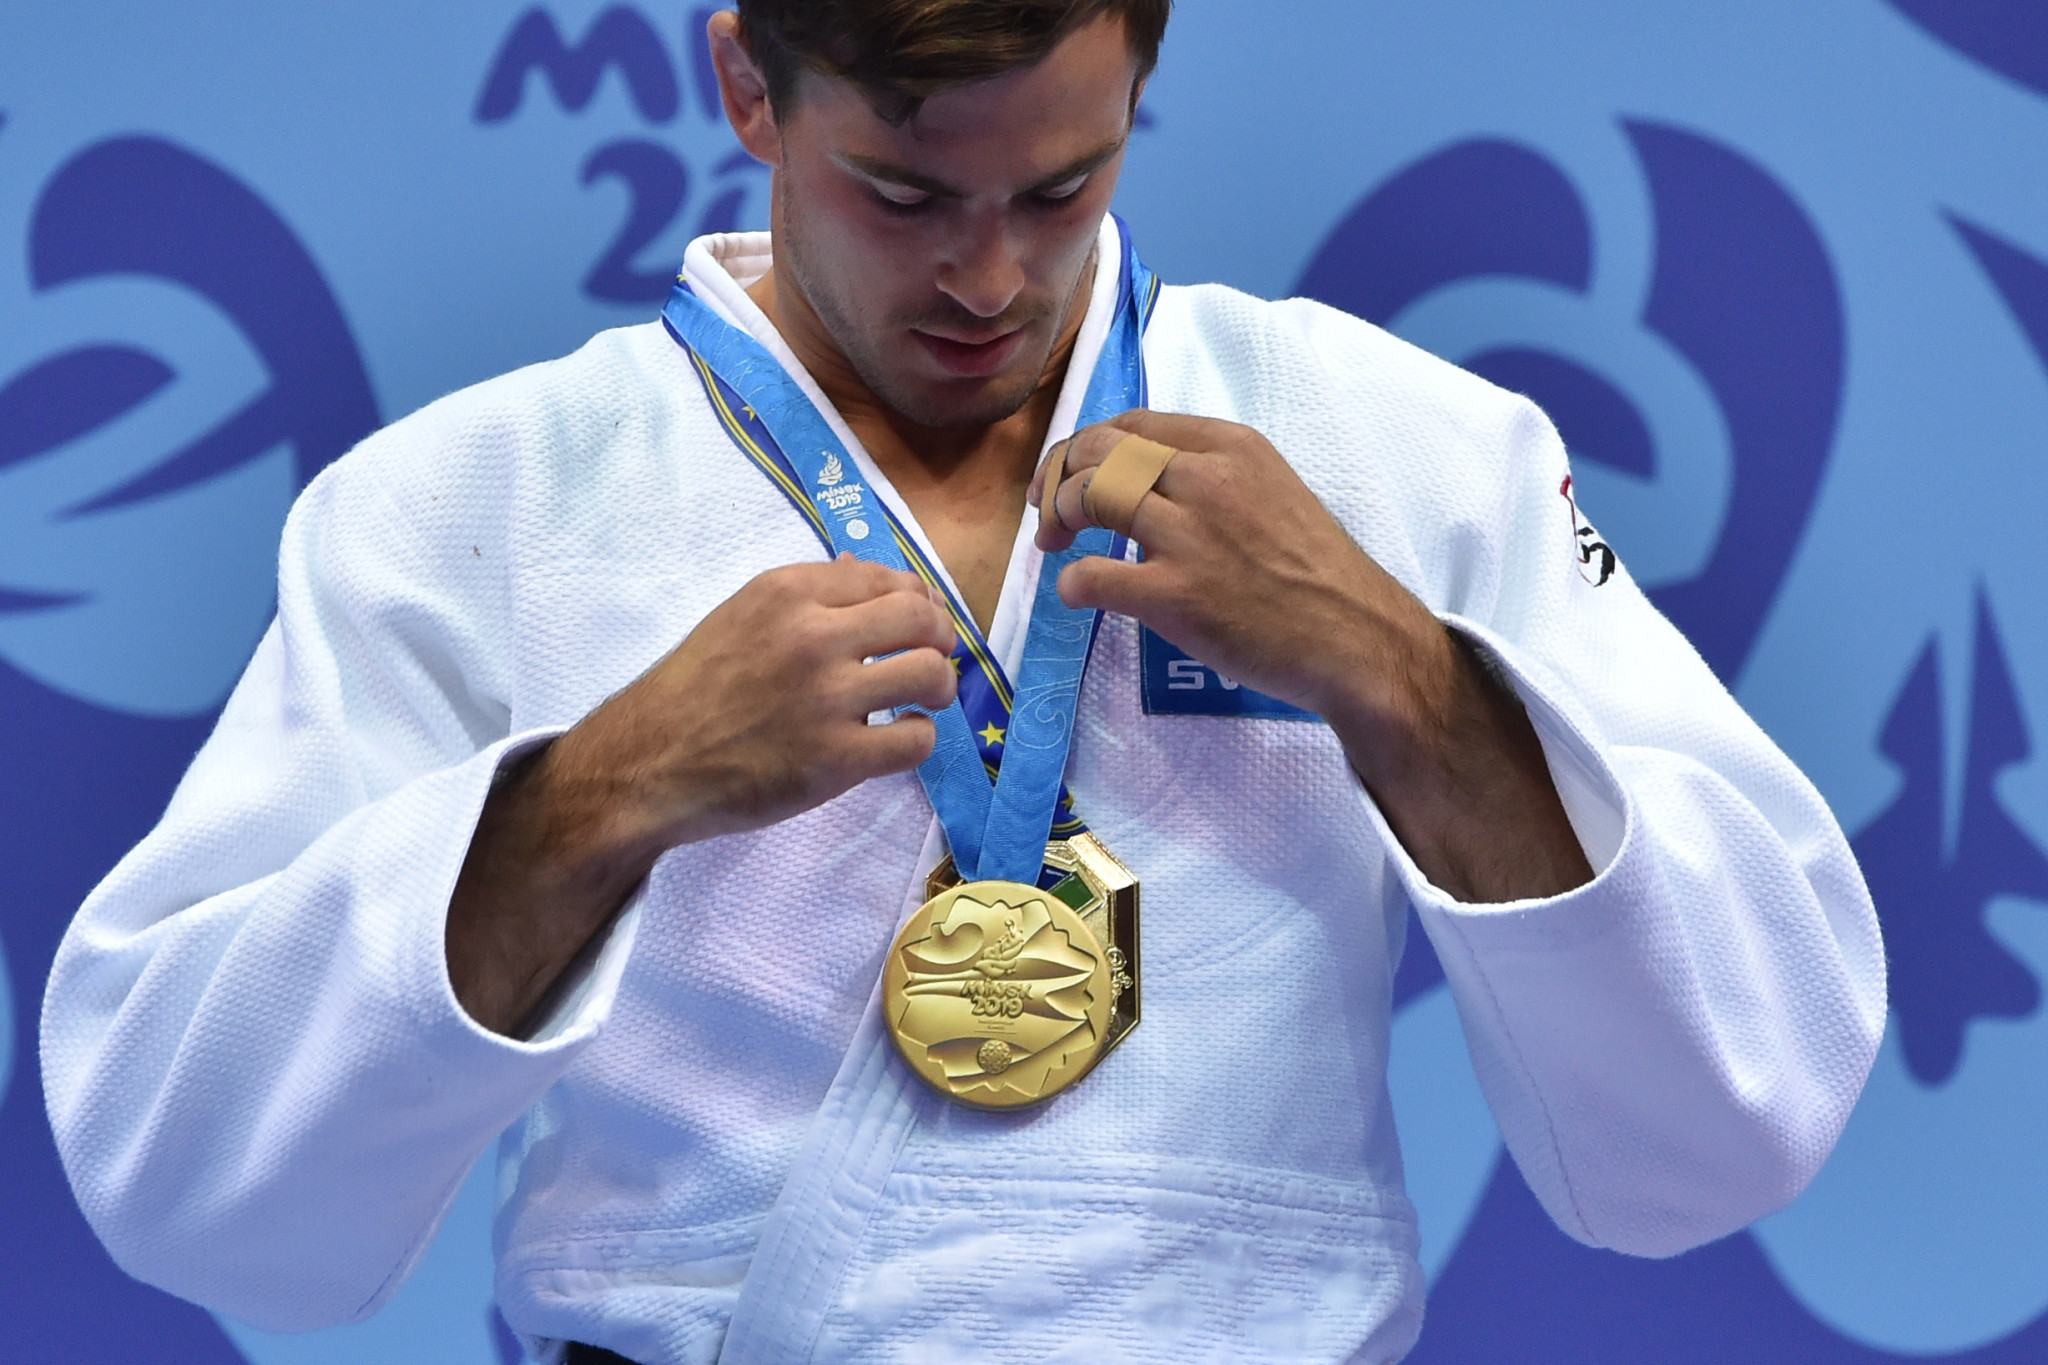 Macias pulls off surprise win over Rio 2016 silver medallist Orujov to win men's under-73kg judo gold